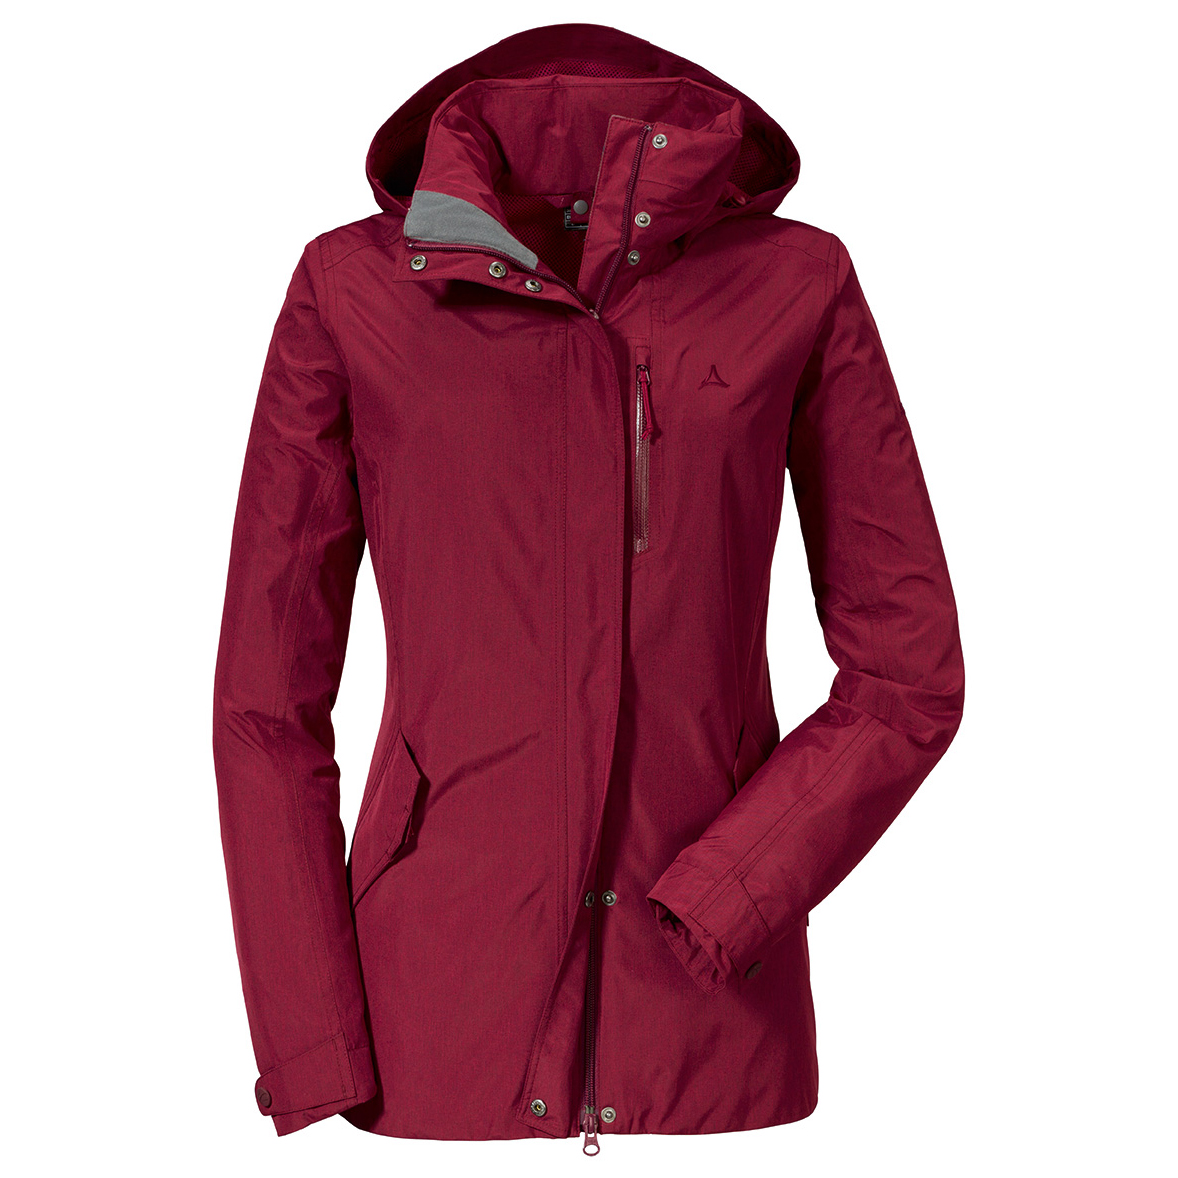 wholesale outlet outlet store sale coupon codes Schöffel - Women's Zipin! Jacket Fontanella2 - Regenjacke - Beet Red | 46  (EU)